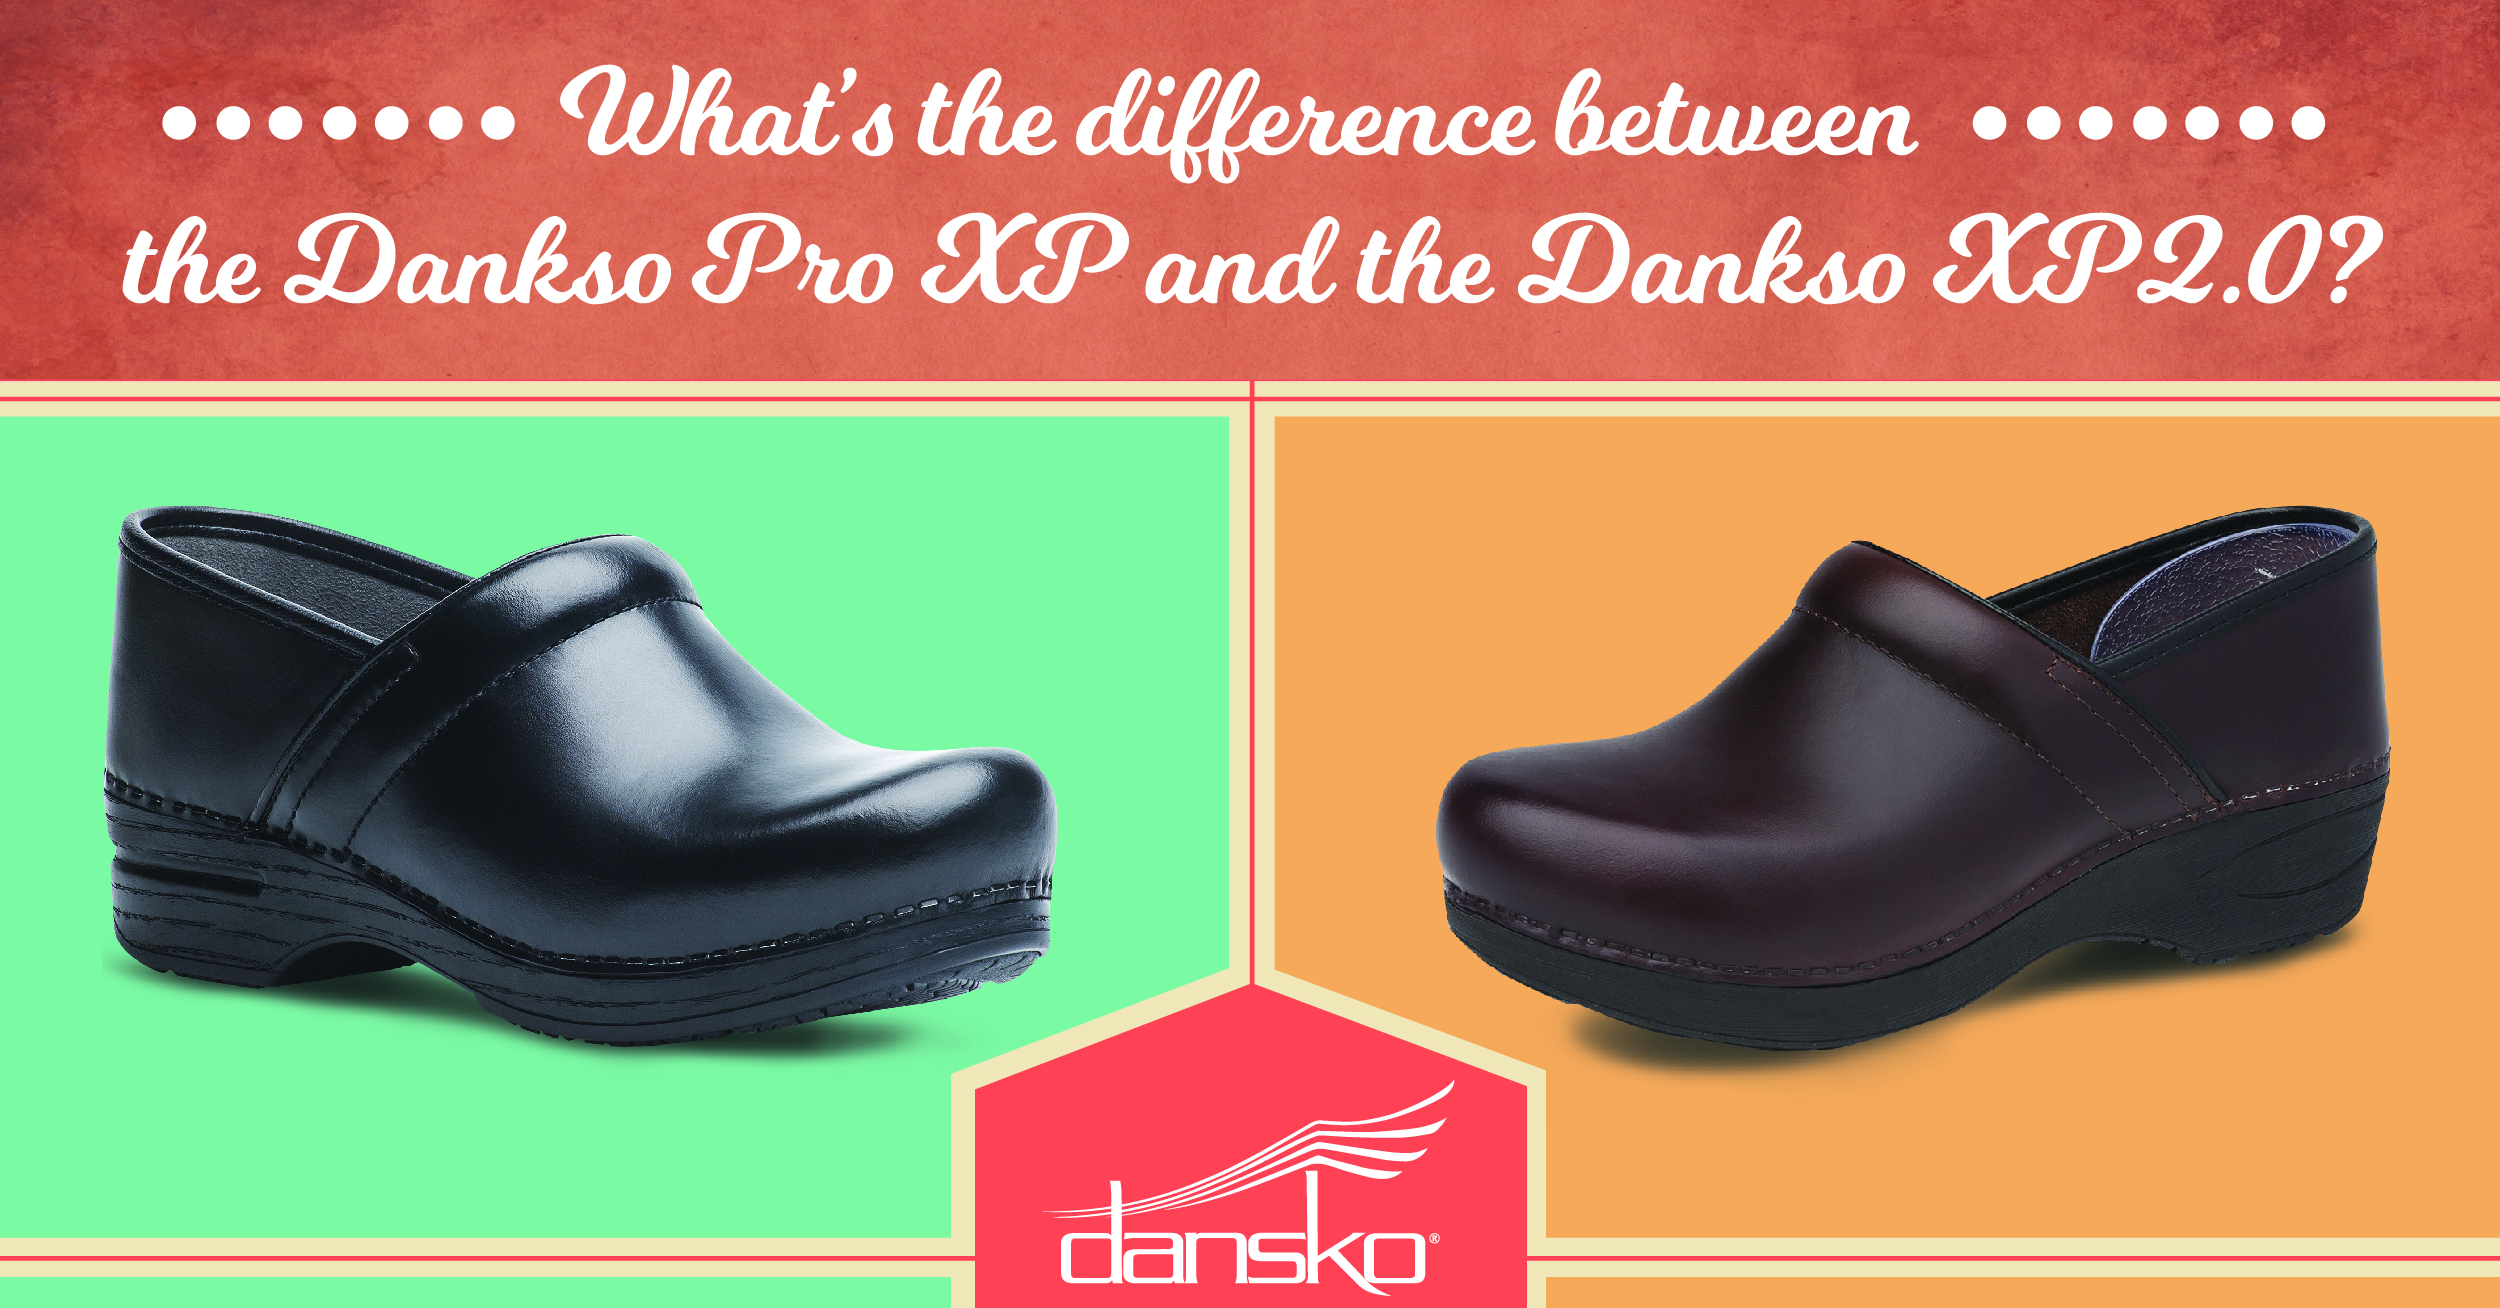 6aae01b01e What s the Difference Between the Dansko Pro XP and the Dansko XP 2.0